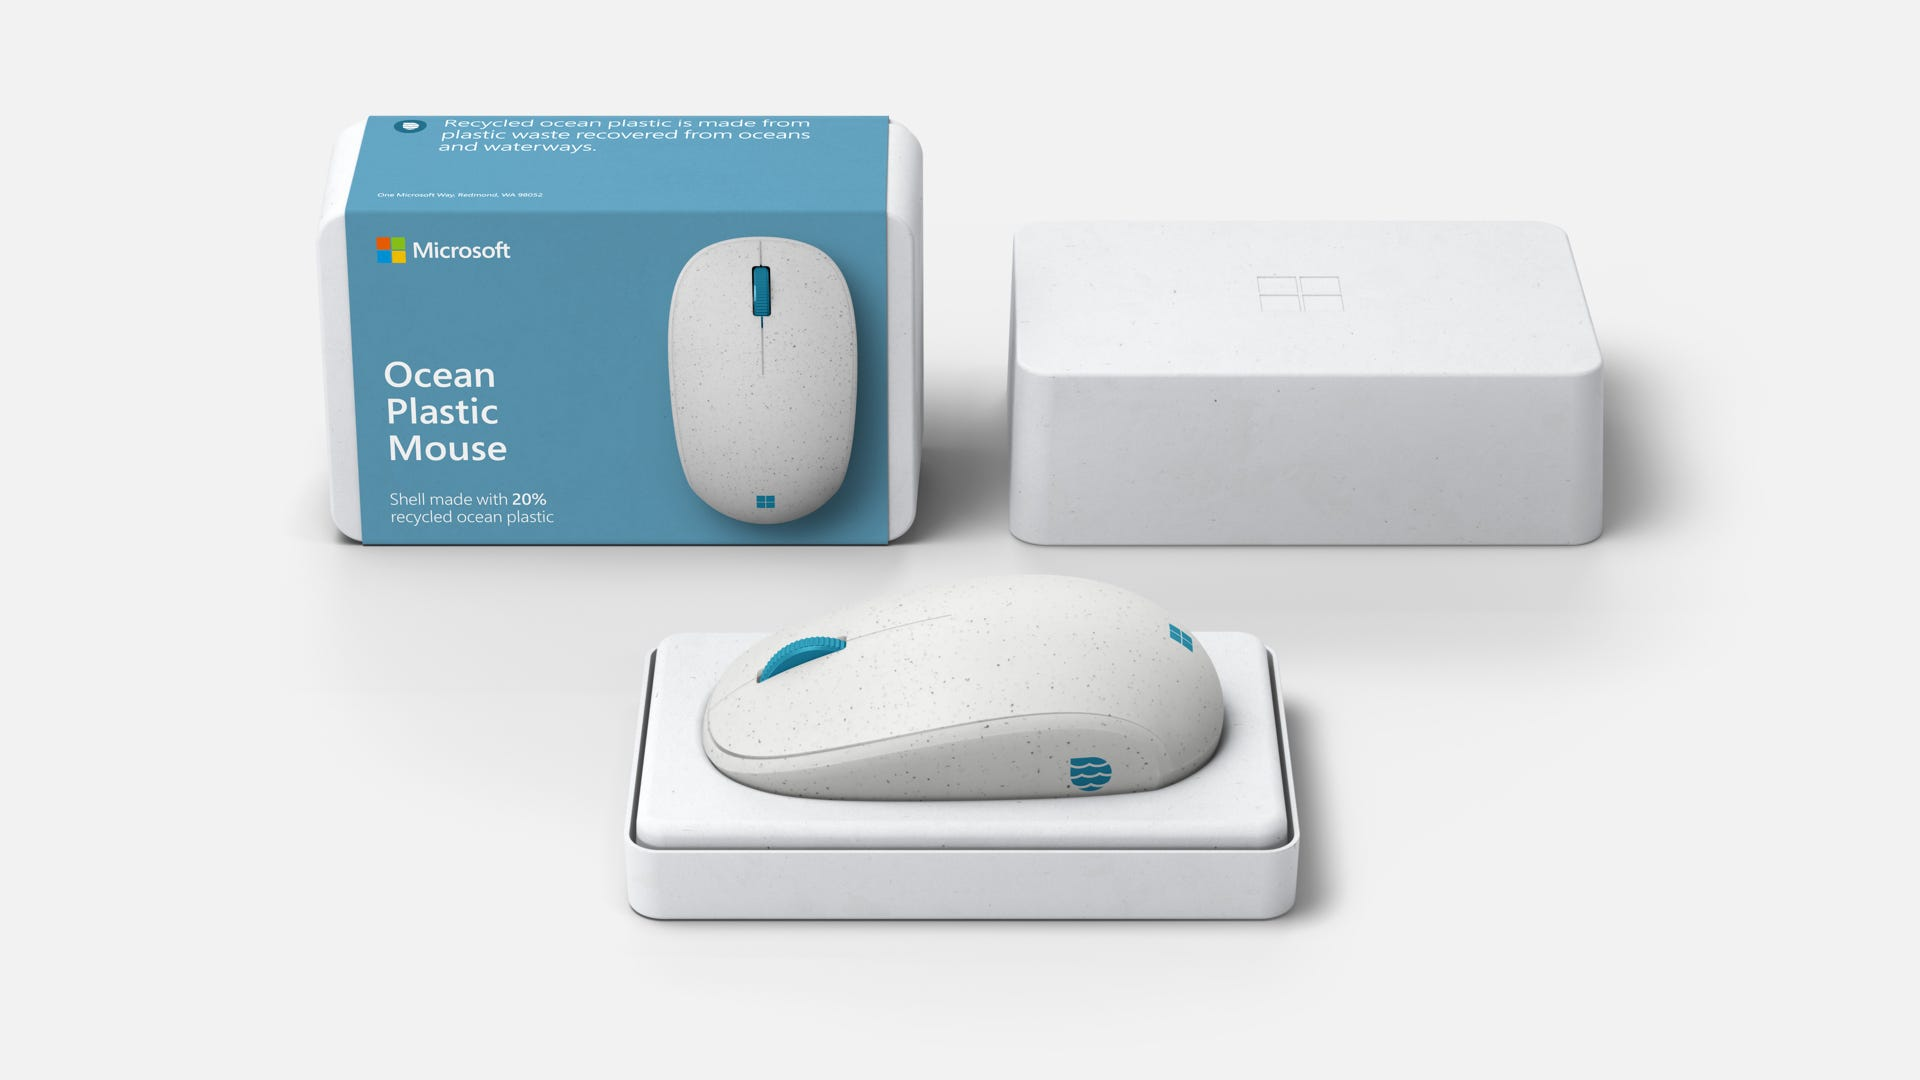 Microsoft Ocean Plastic Mouse from recycled plastic